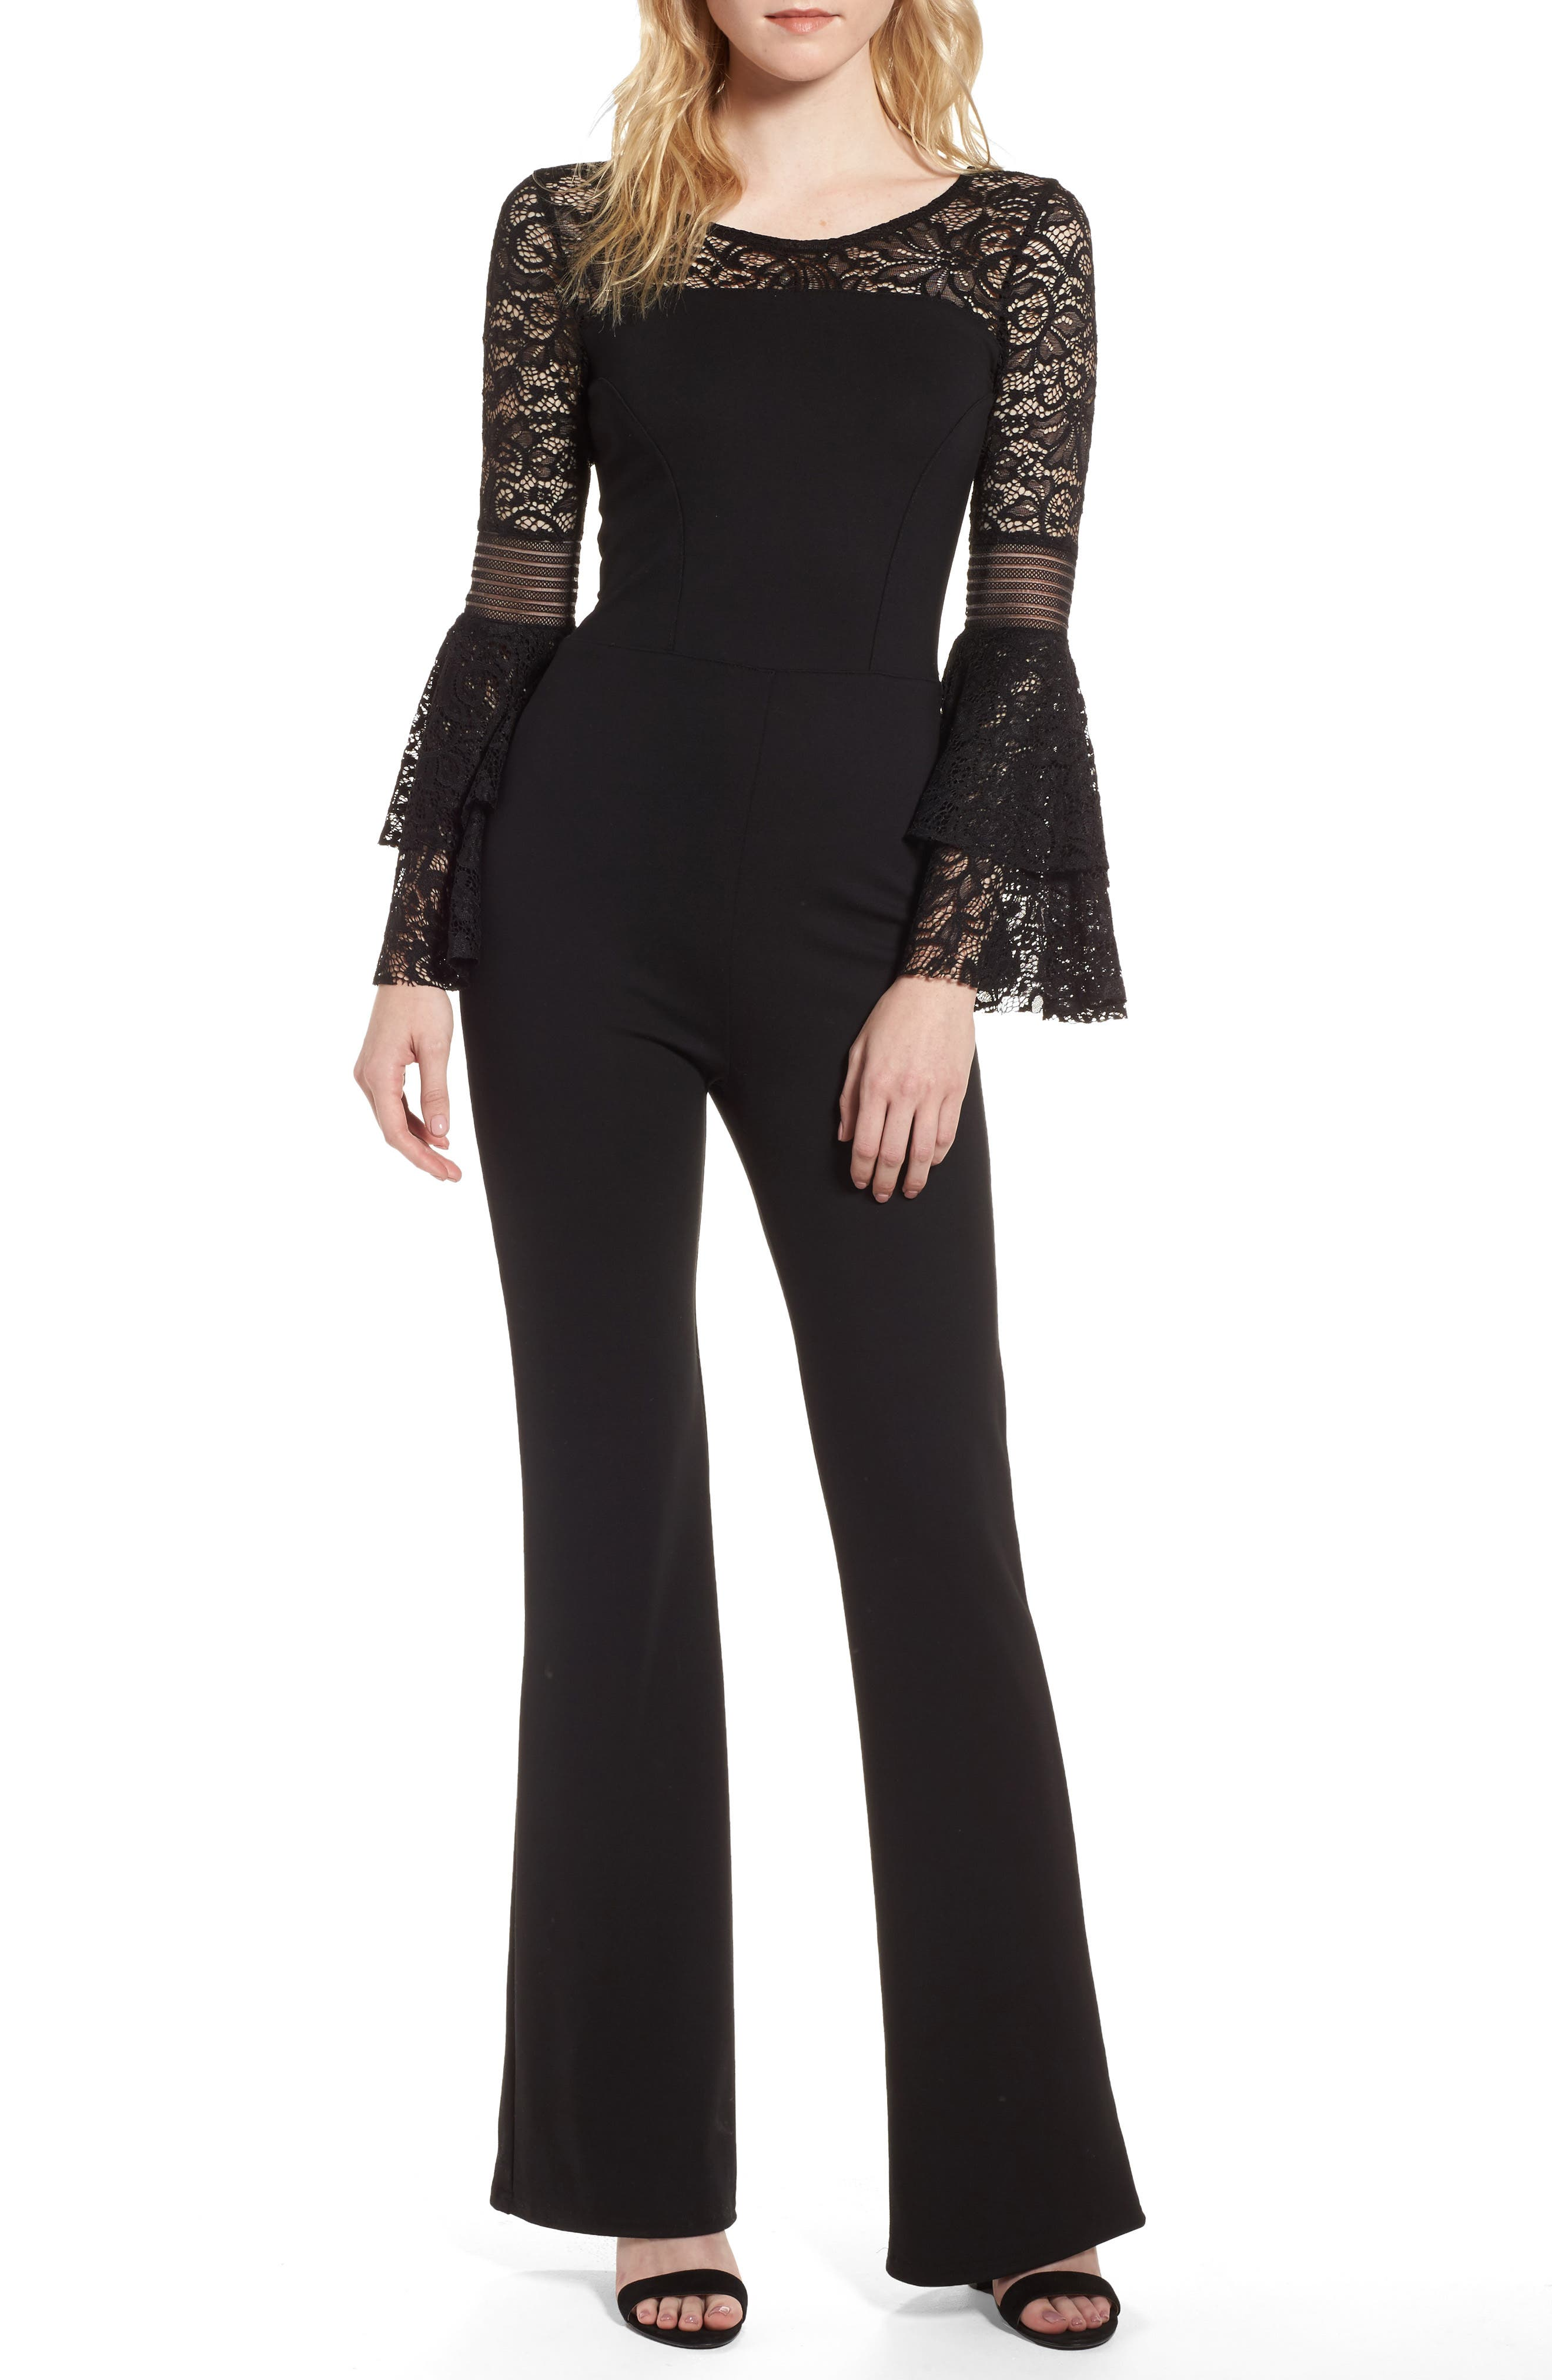 Floetry Lace Bell Sleeve Romper,                             Main thumbnail 1, color,                             001